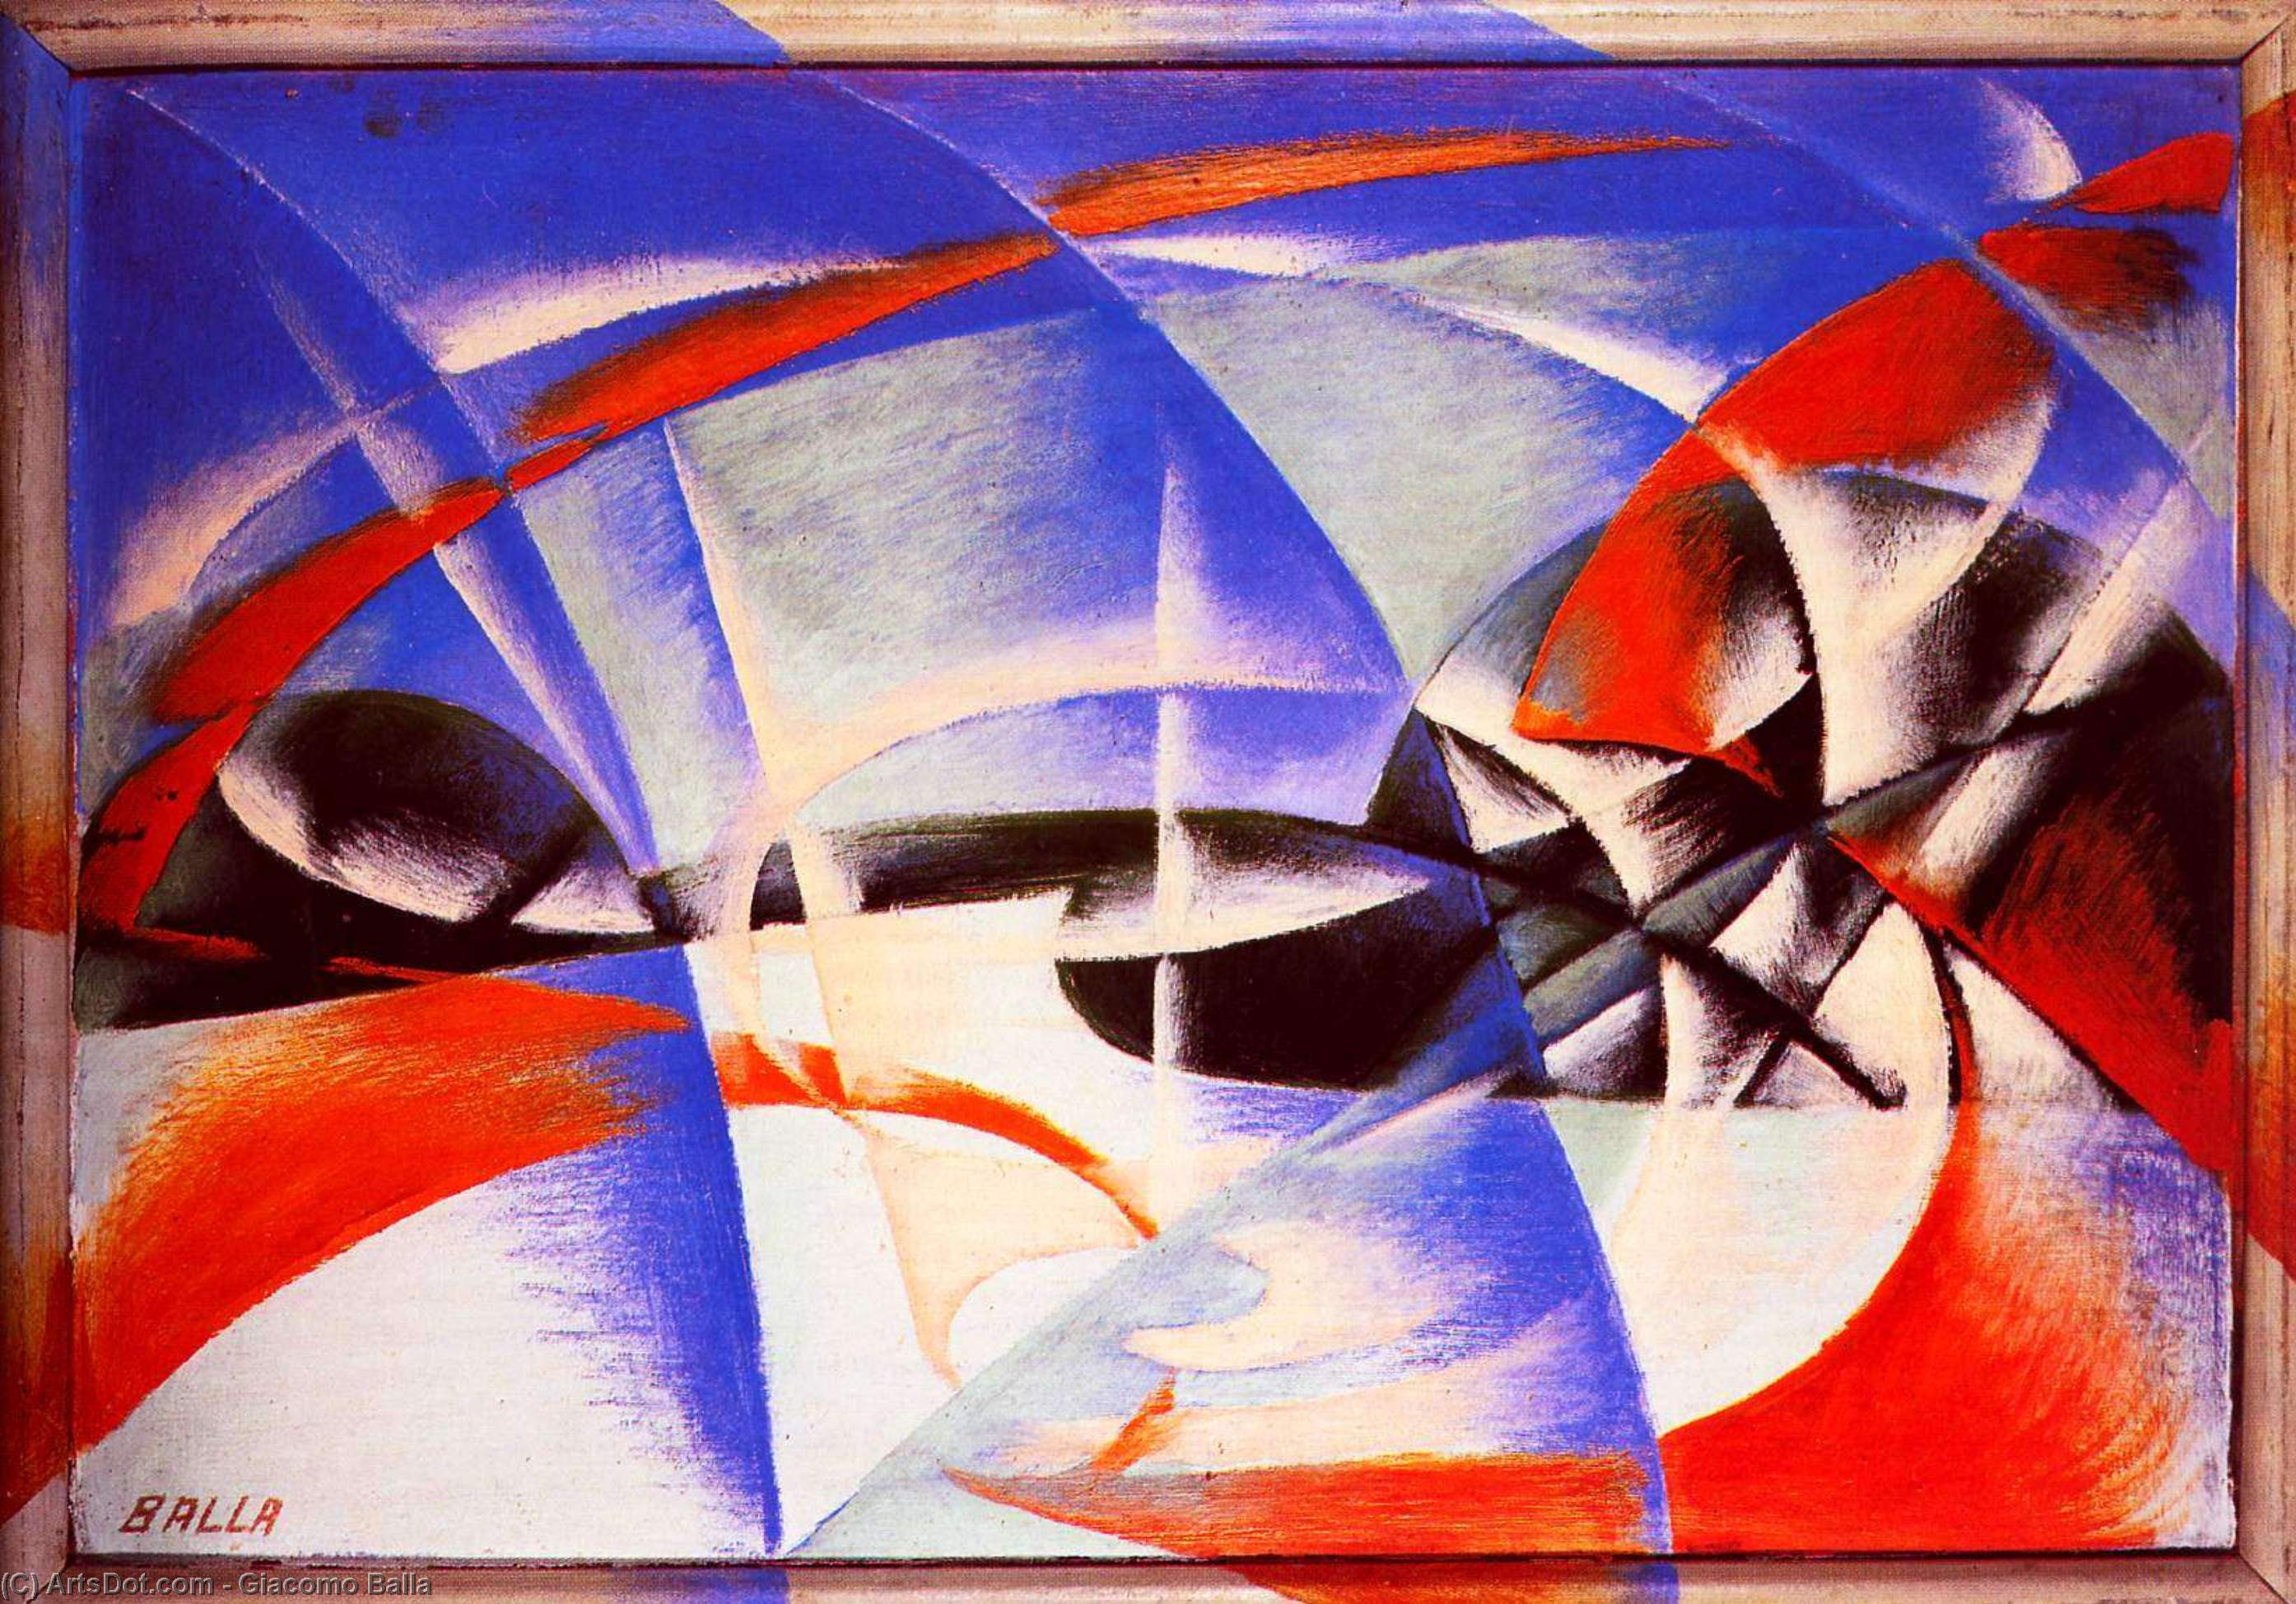 german expressionism and italian futurism utopian architecture Modern art movements: the british counterpart to italian futurism  was the name given to a group of expressionist artists in germany during the 1920s.